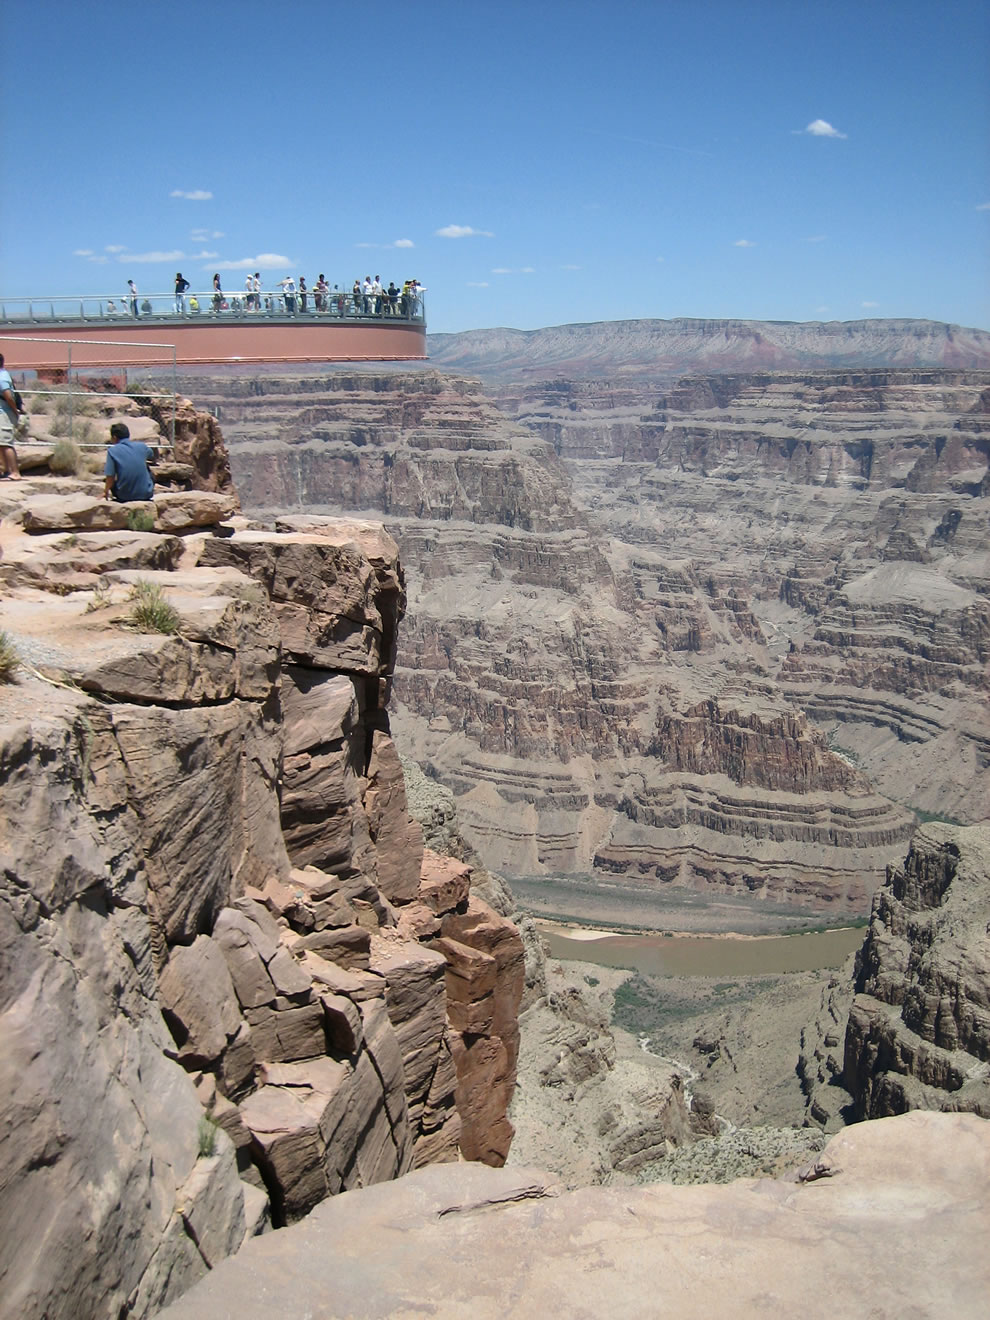 https://i2.wp.com/www.lovethesepics.com/wp-content/uploads/2011/03/Skywalk_grand_canyon.jpg